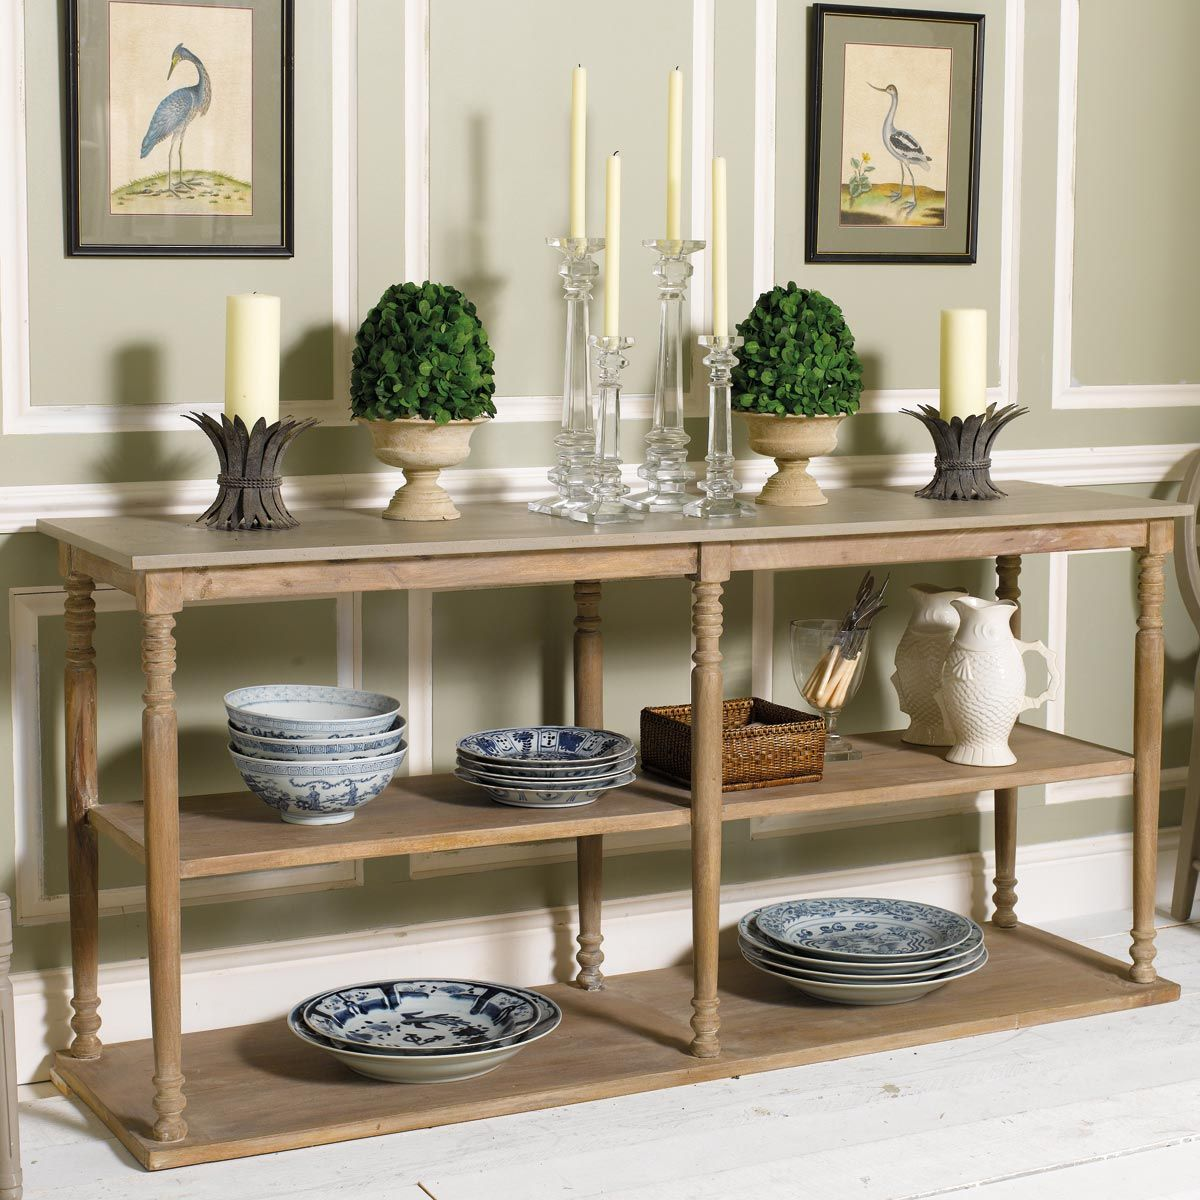 Parkstead Wood Console Table With Shelves Wood Console Table Wood Console Console Table